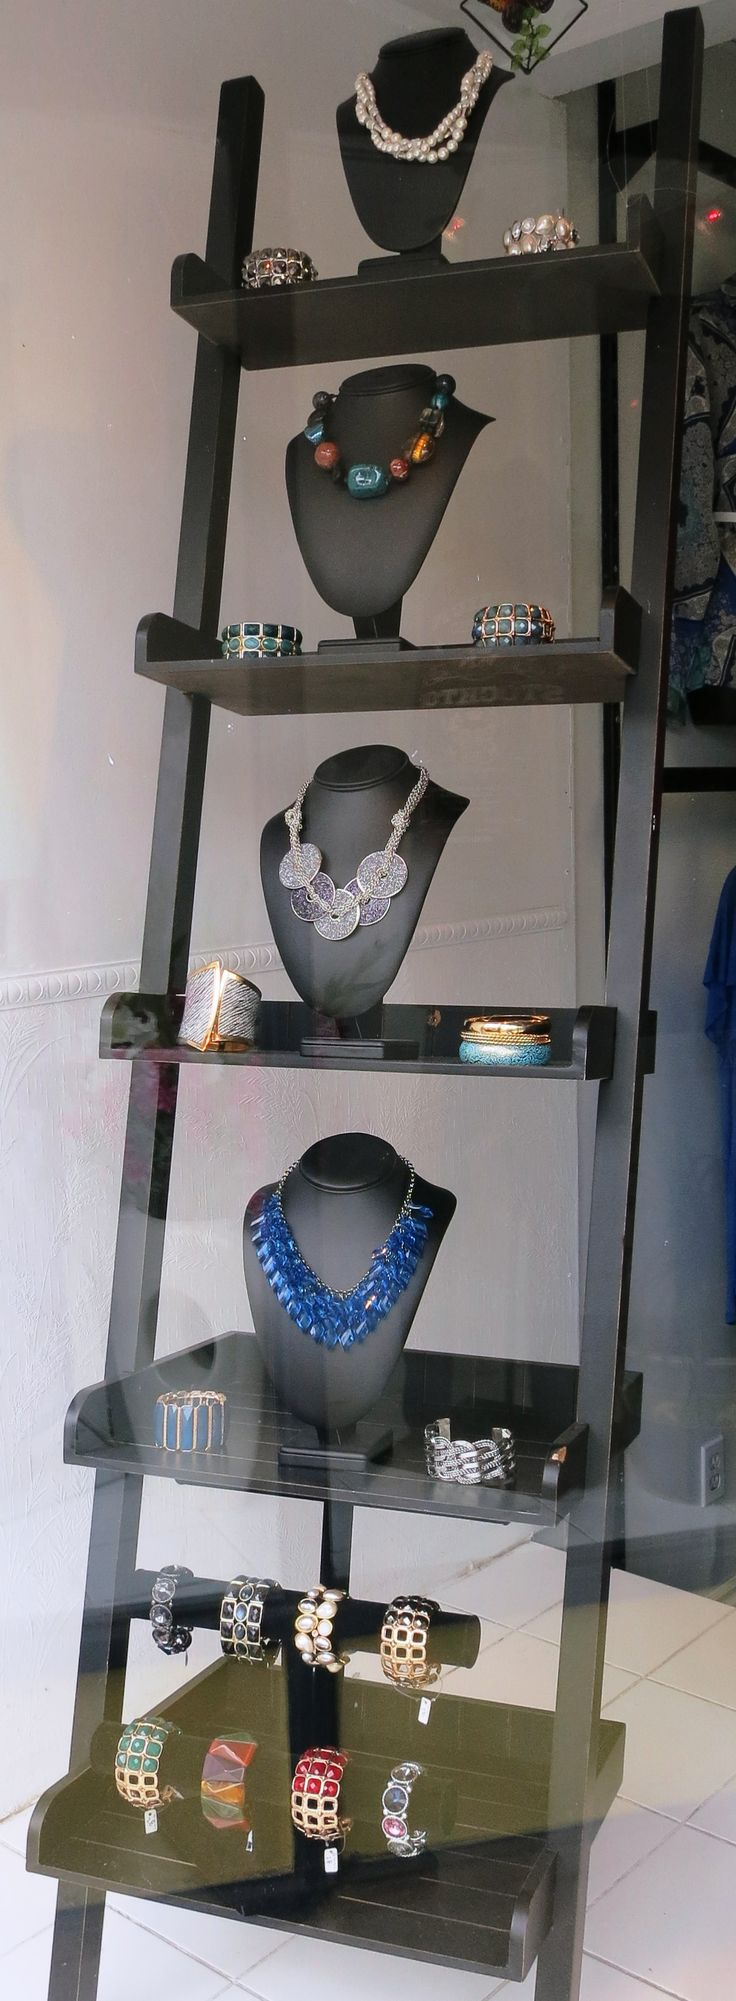 Window display ideas for jewellery   best the dream images on pinterest  glass display cabinets